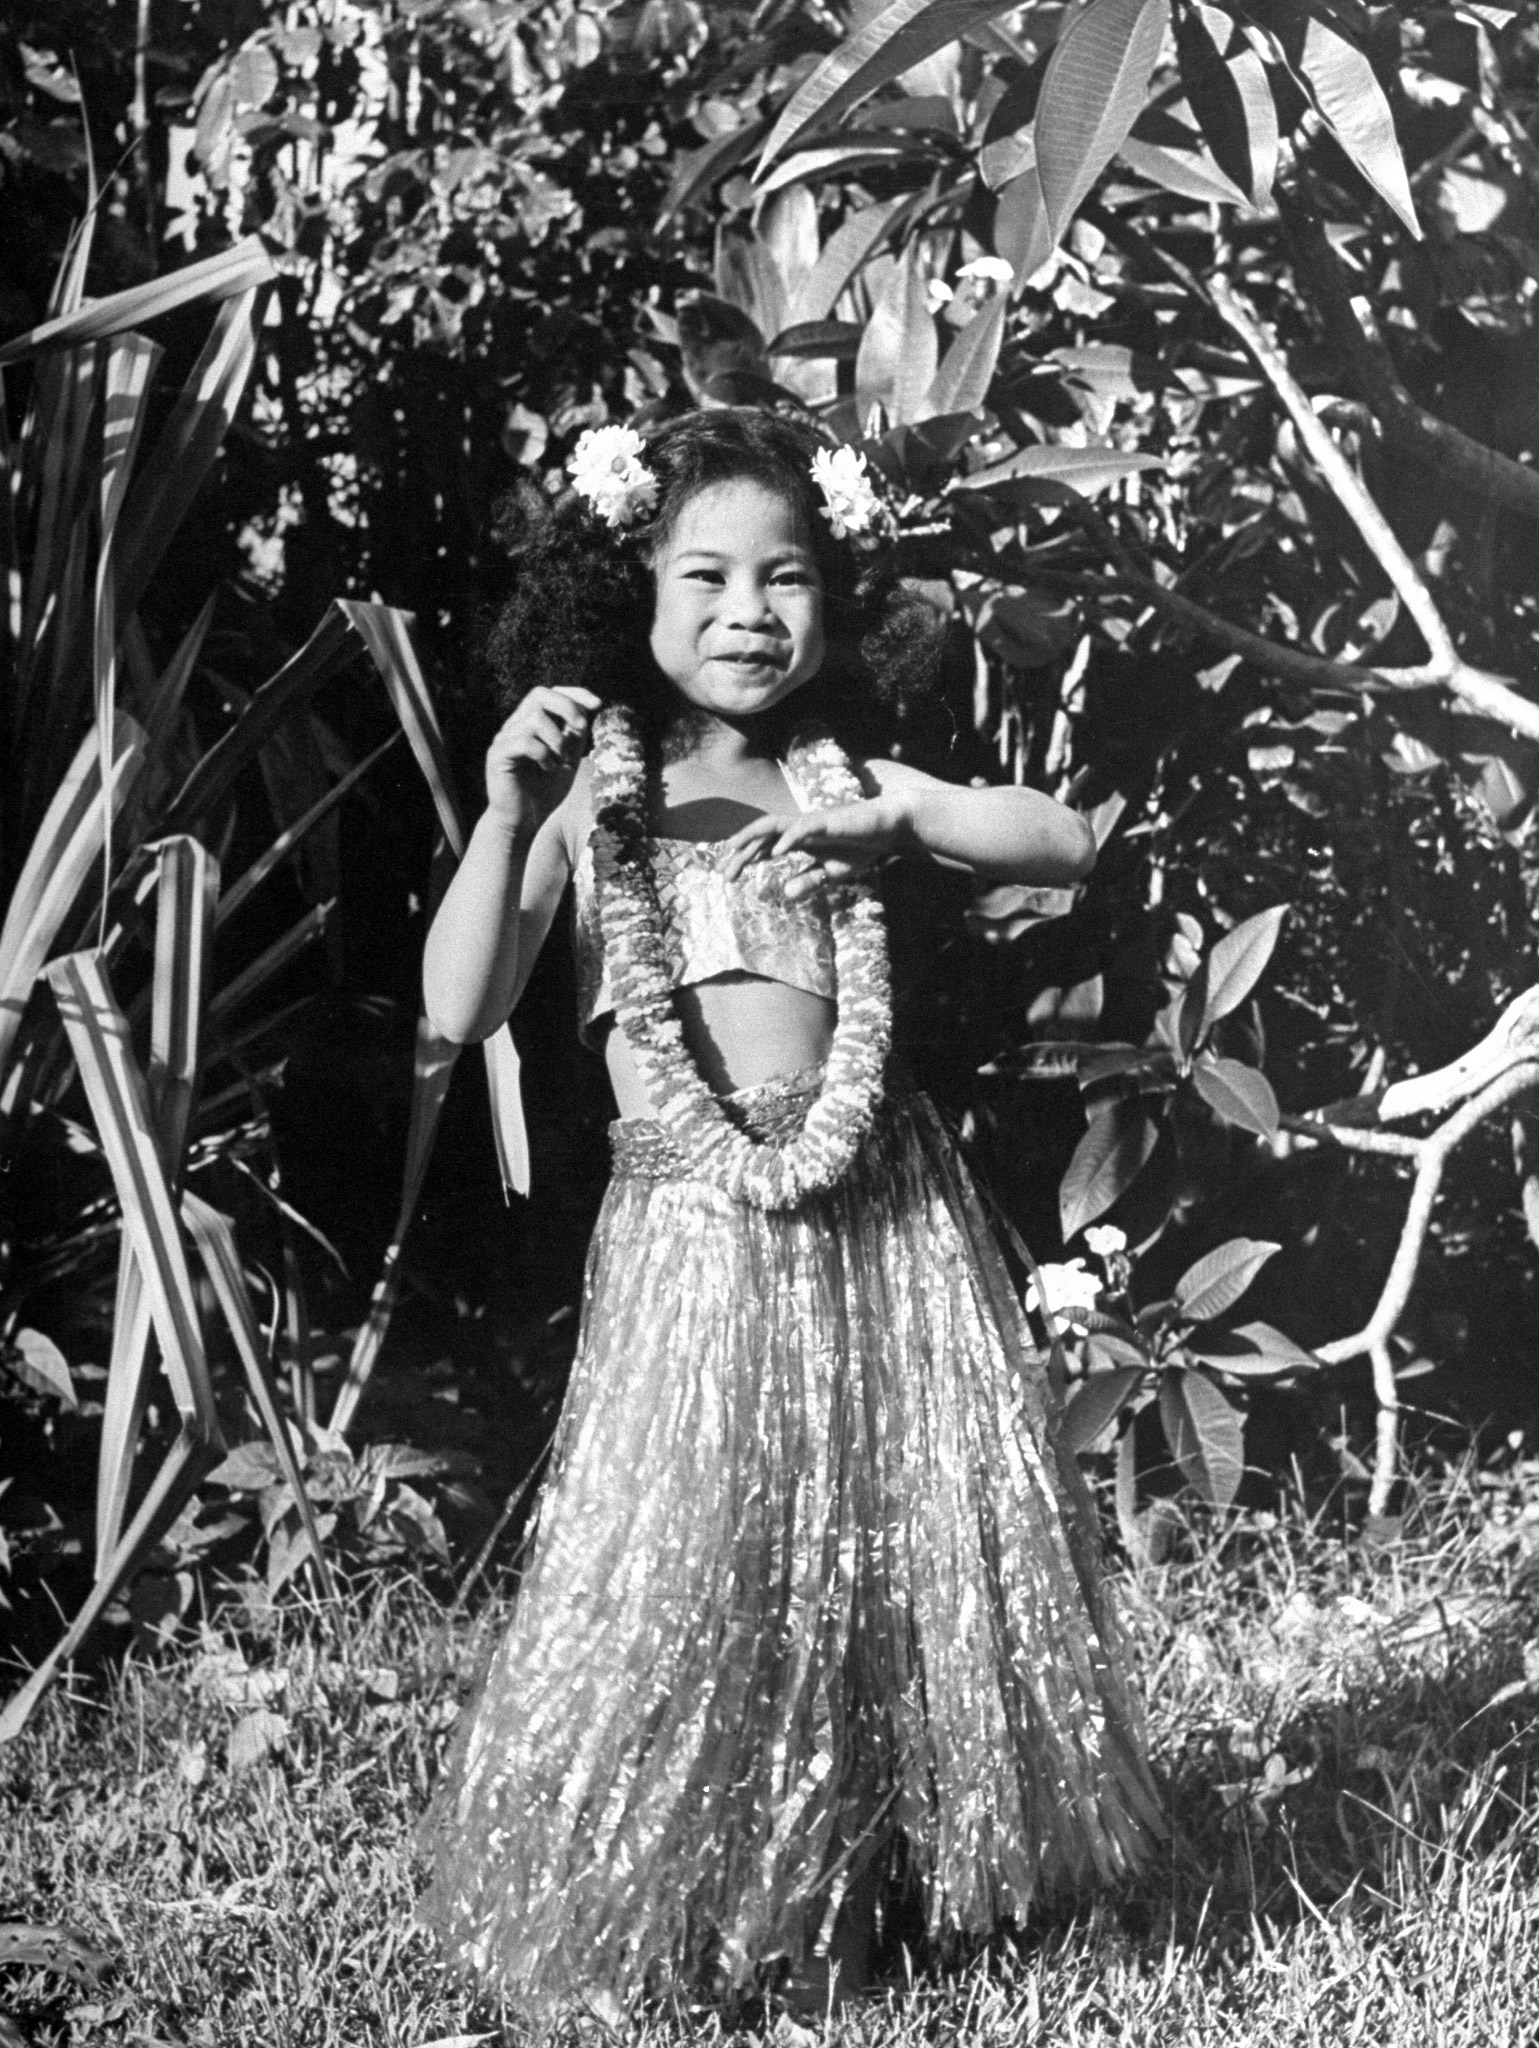 A young girl dances in a hula skirt.